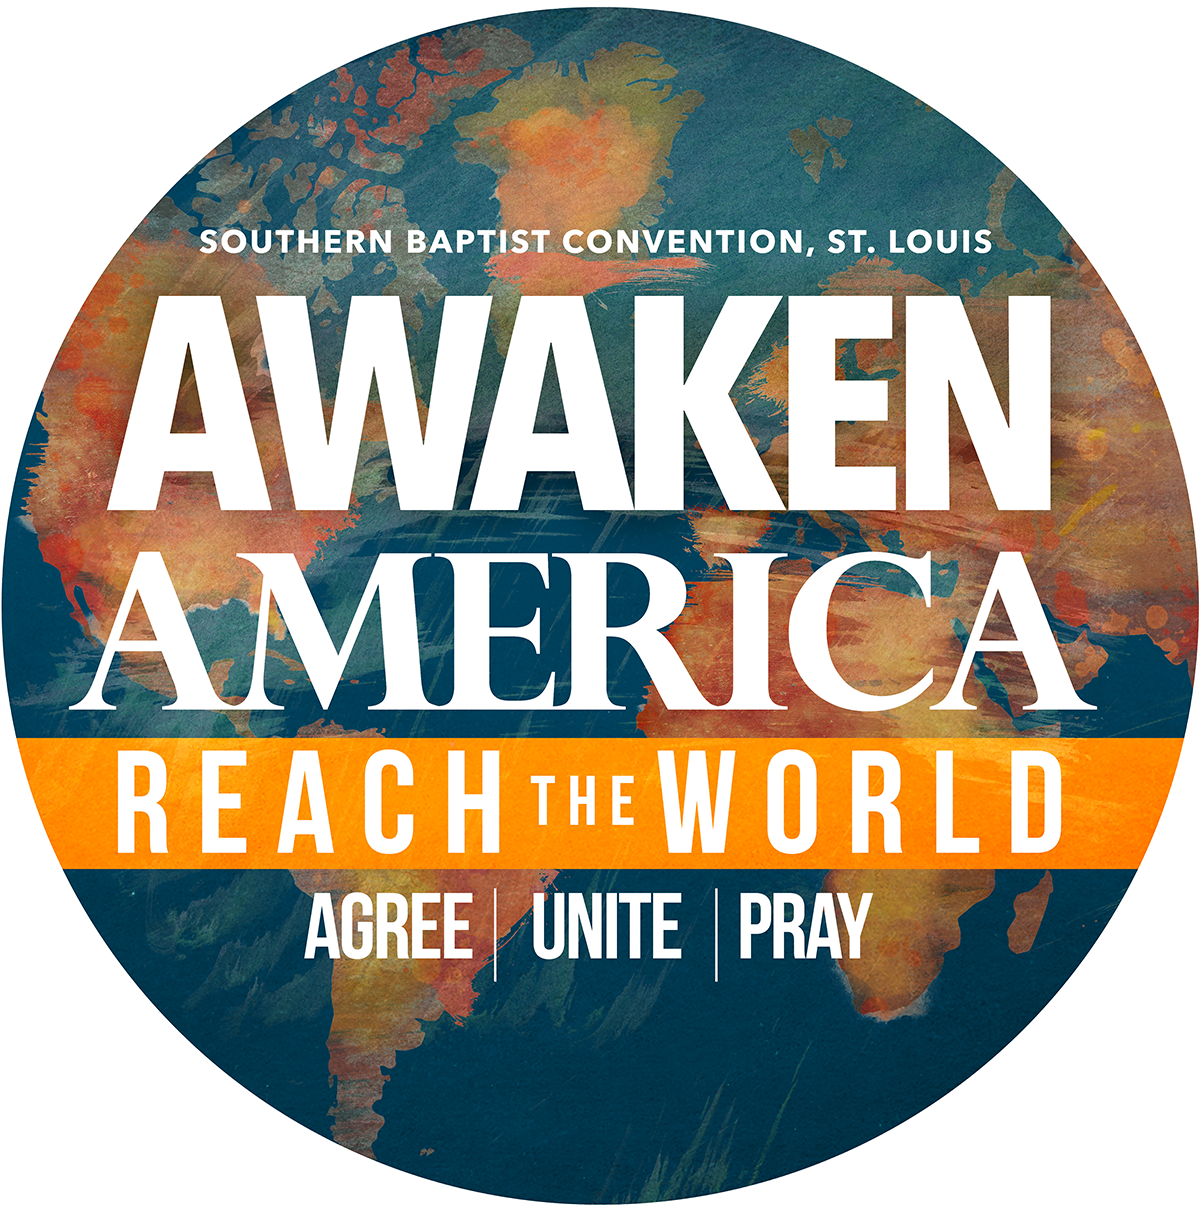 Southern Baptist Convention Presidents